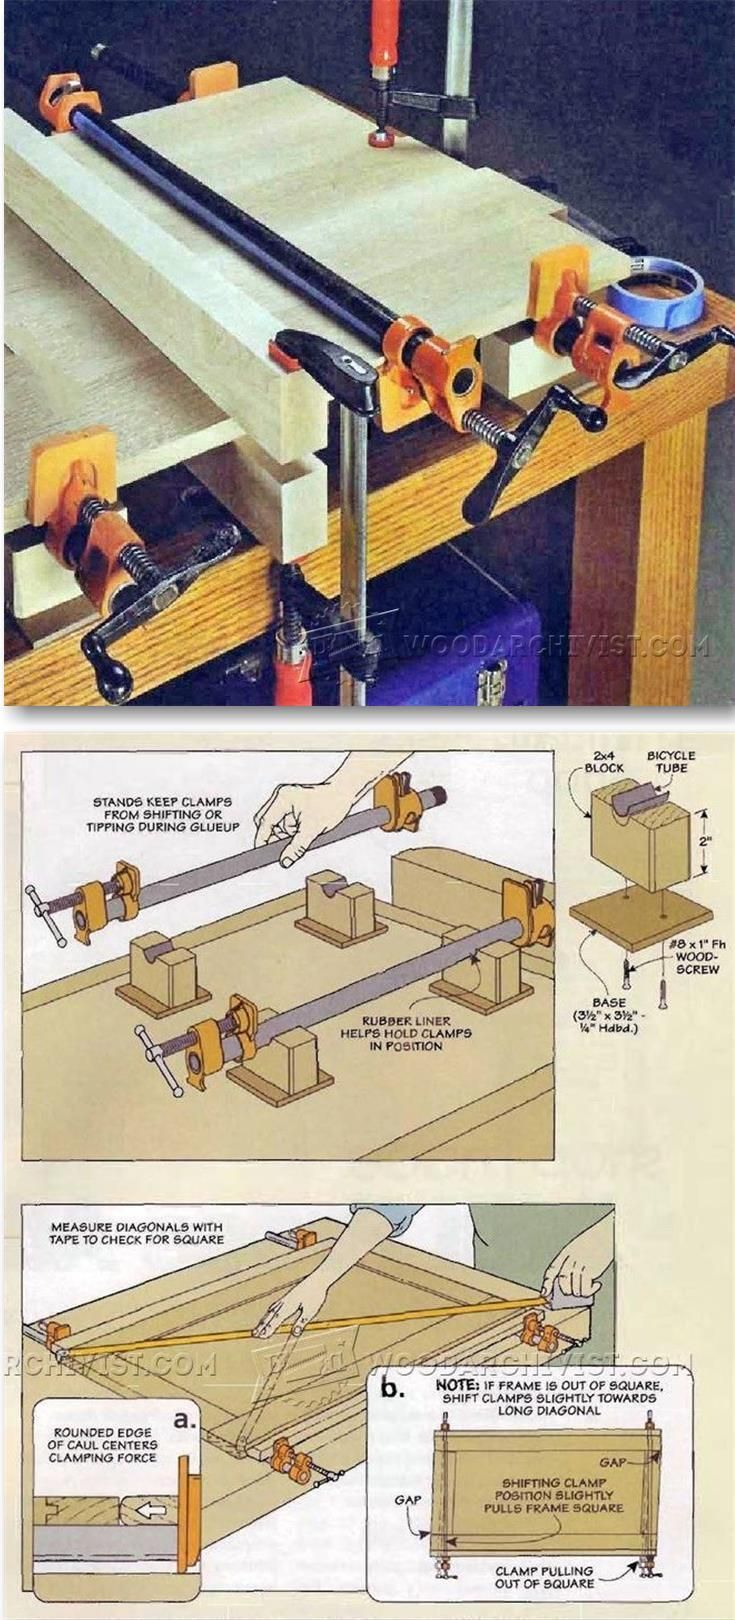 Using Pipe Clamps for Woodworking - Clamp and Clamping Tips, Jigs and Fixtures | WoodArchivist.com